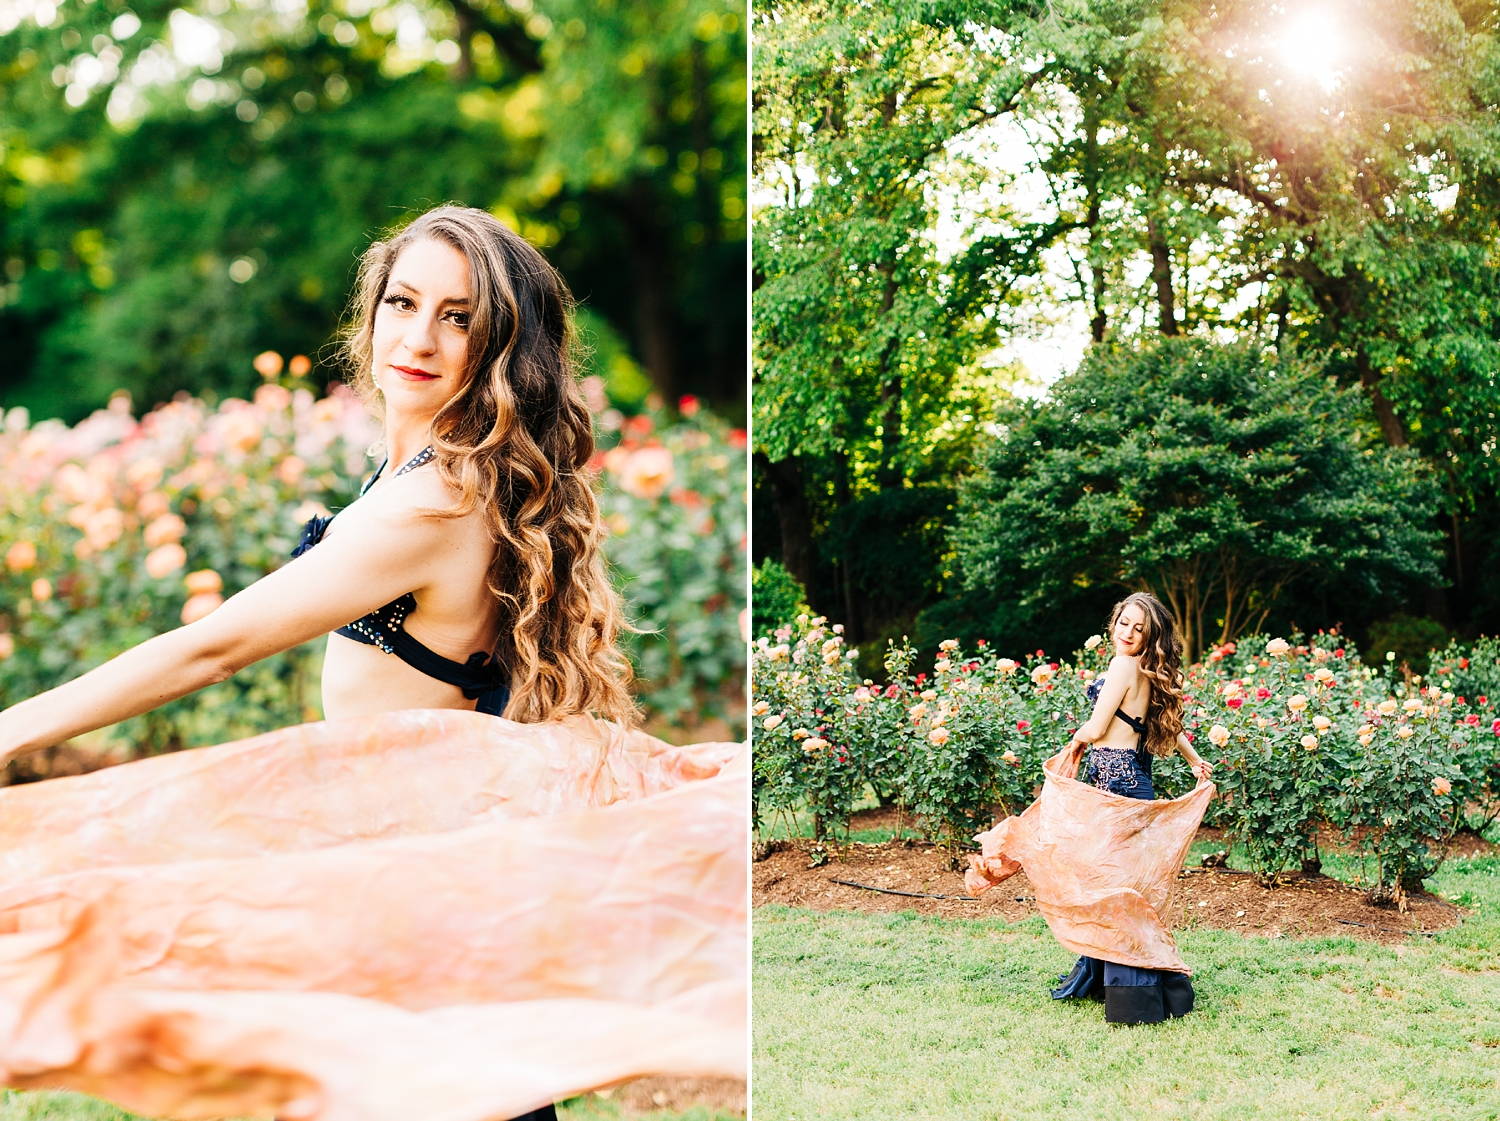 Promo session at the Raleigh Rose Garden with Belly Dancing with Jackie